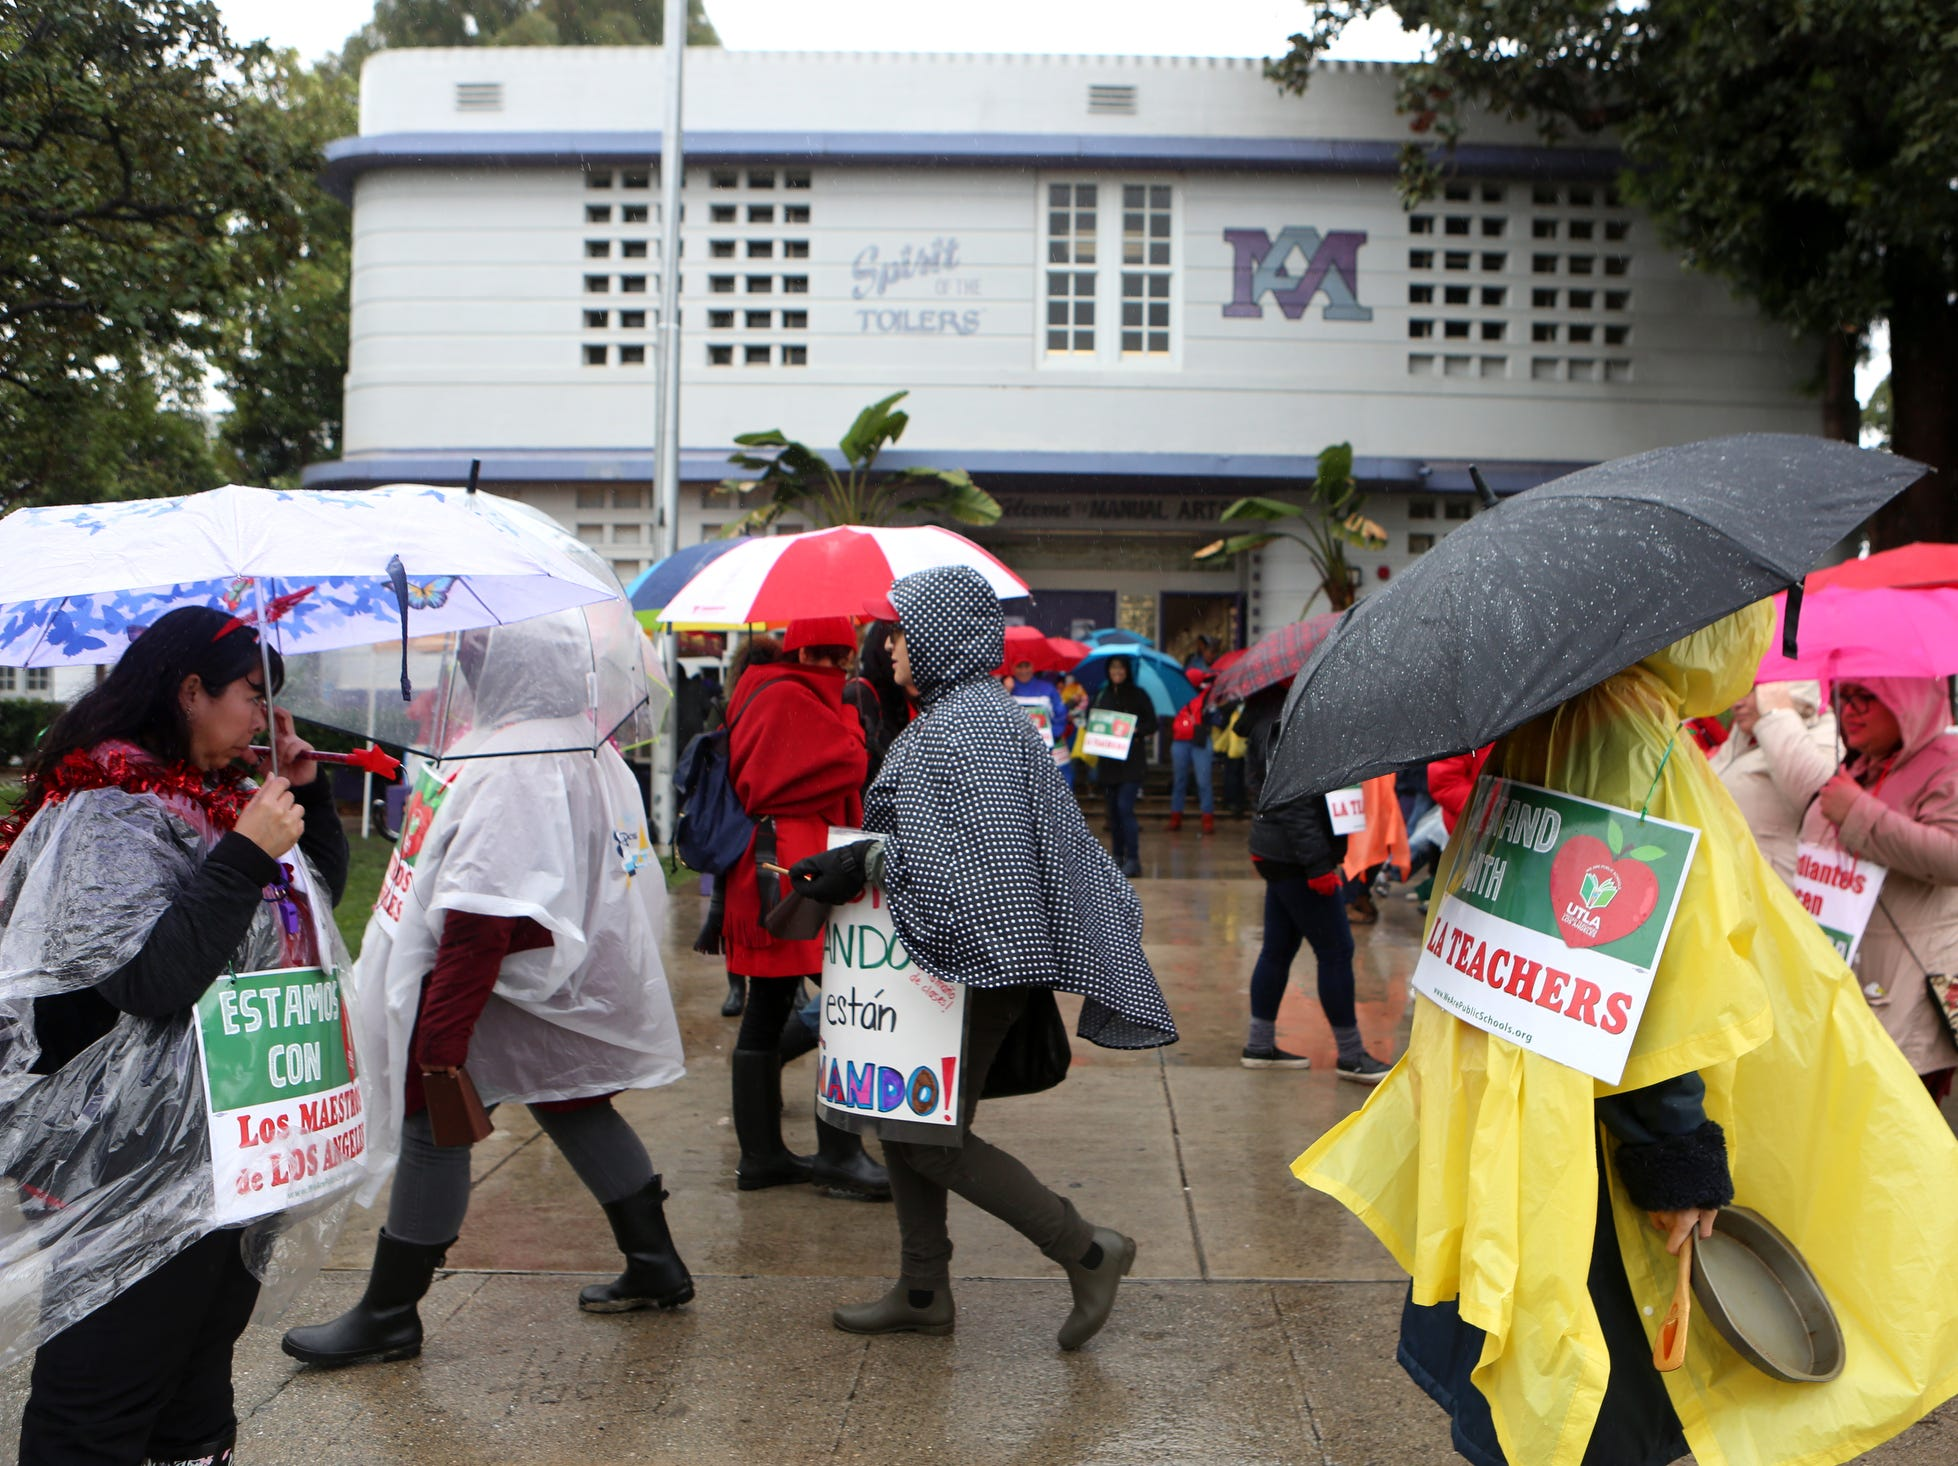 Educators and their supporters march in front of Manuel Arts High School during the third day of the United Teachers Los Angeles strike in Los Angeles on Wednesday, January 16, 2019.